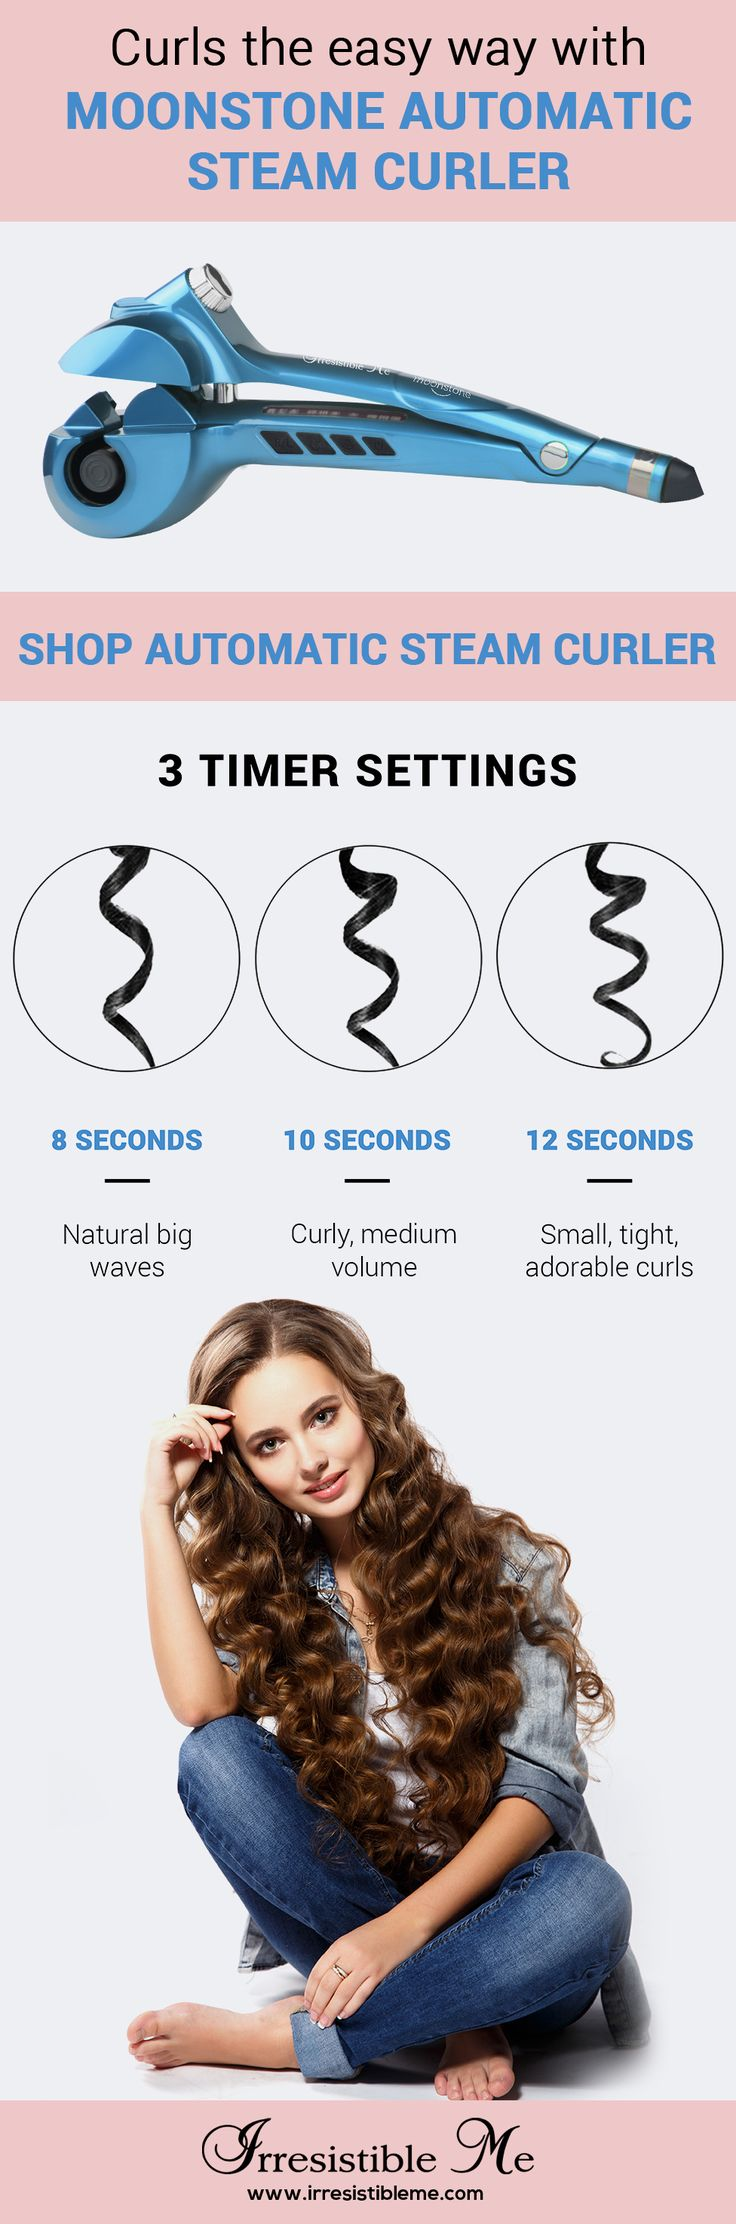 The Moonstone Automatic Steam Curler gives you a better, faster way to create perfect, consistent curls. The curling chamber heats the hair from all directions while the steam helps seal nourishing moisture for gorgeous, beach waves. The titanium coating enhances its durability and heat transfer, unlike conventional ceramic irons. Sign up to shop our entire collection of premium hair tools with curlers and hair stylers.